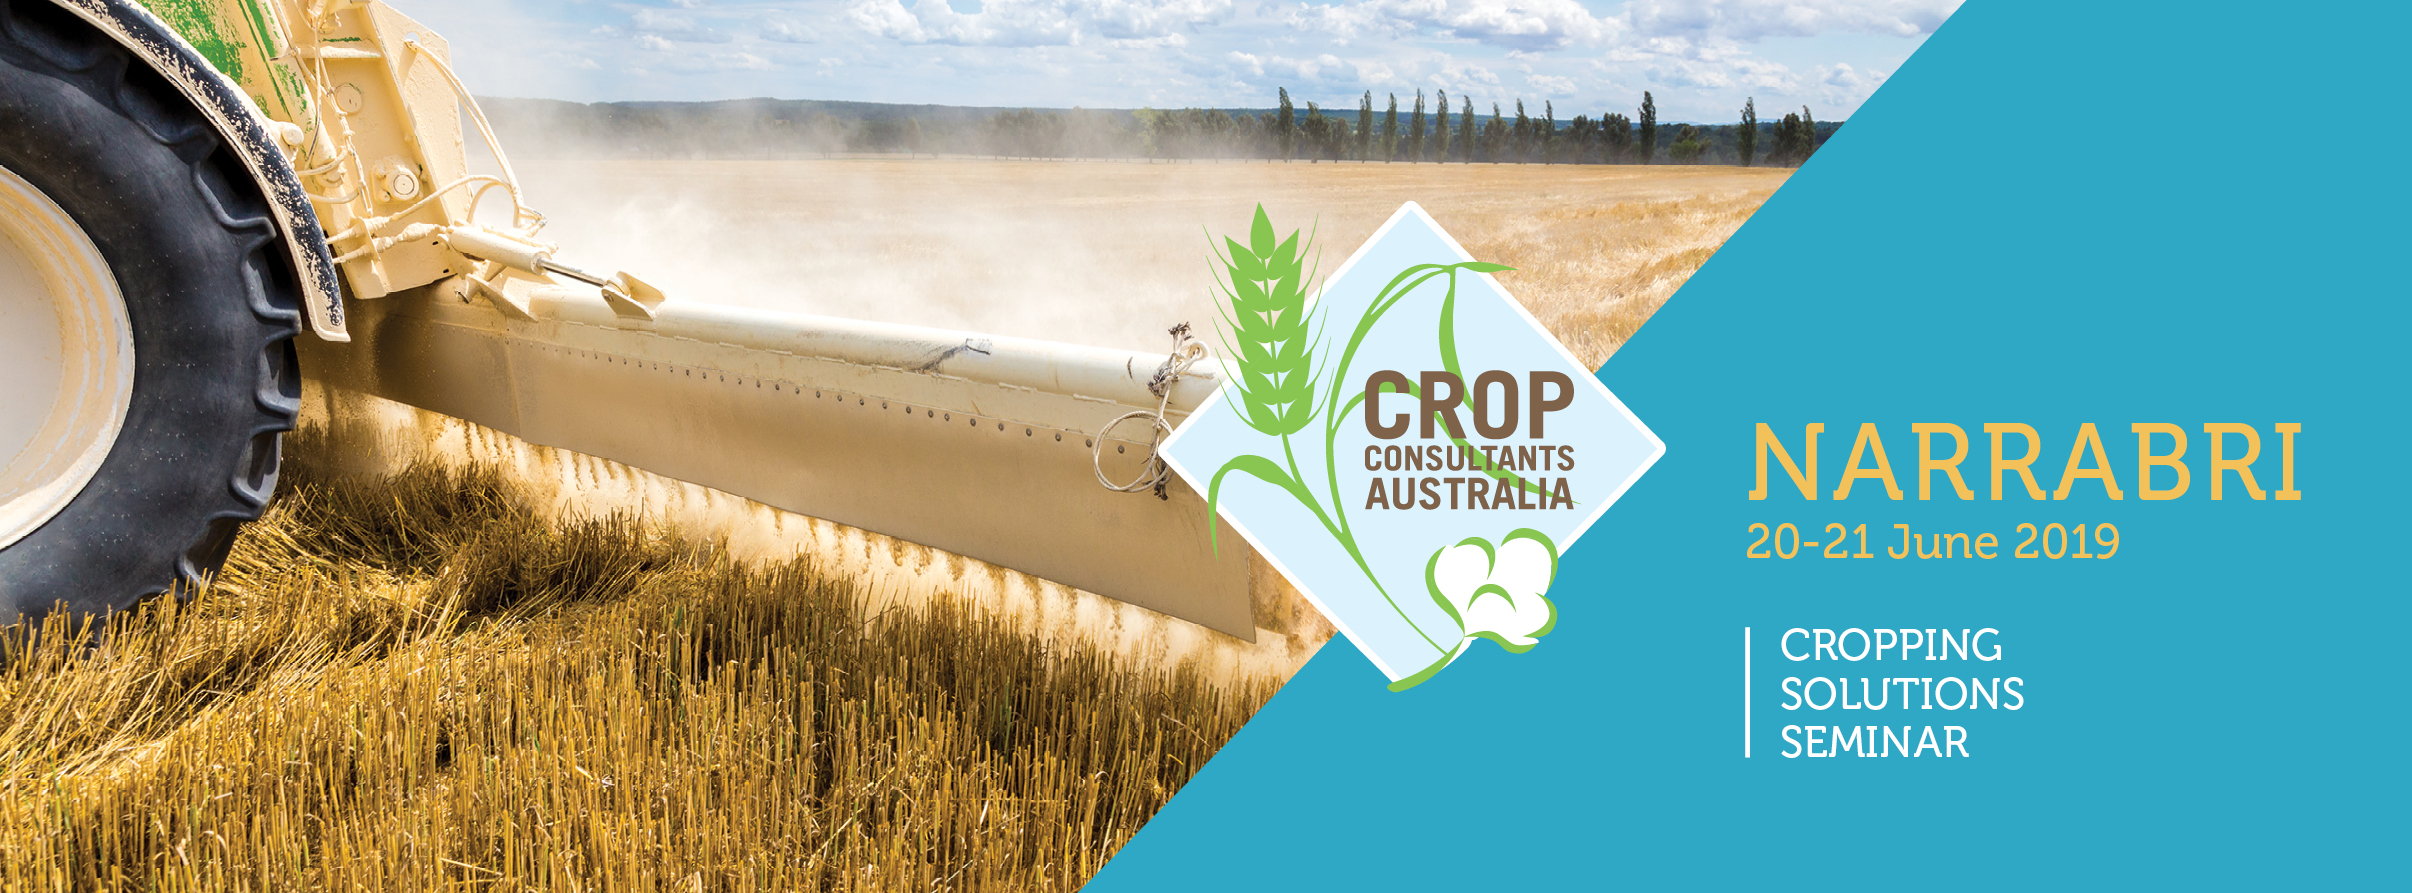 CCA Cropping Solutions Seminar